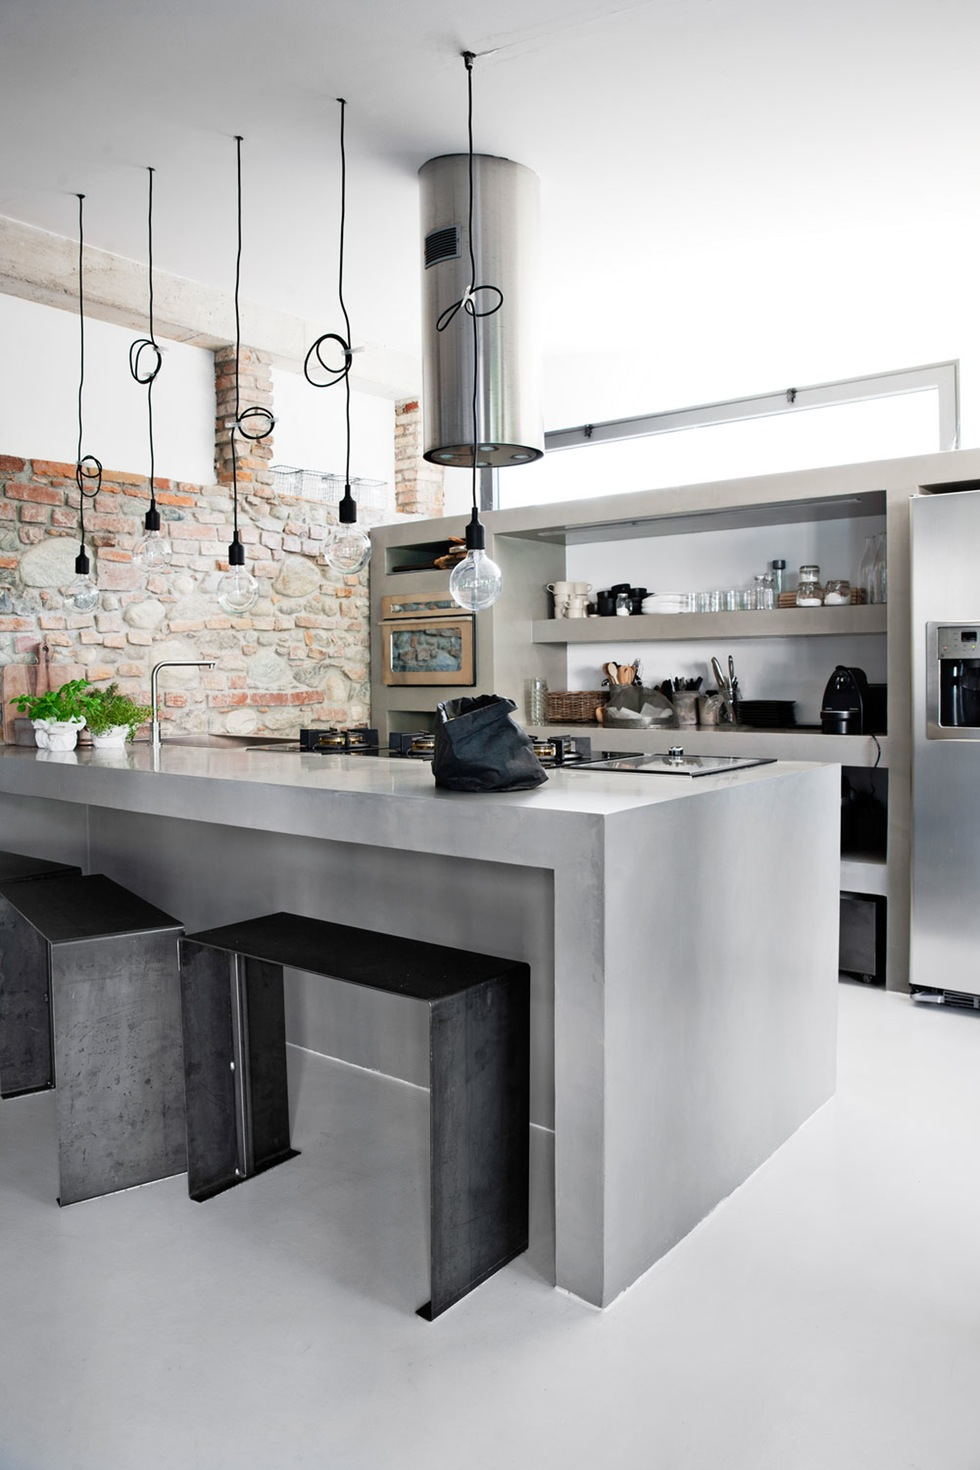 White and concrete for an industrial look coco lapine designcoco lapine design - Material para cocinas modernas ...